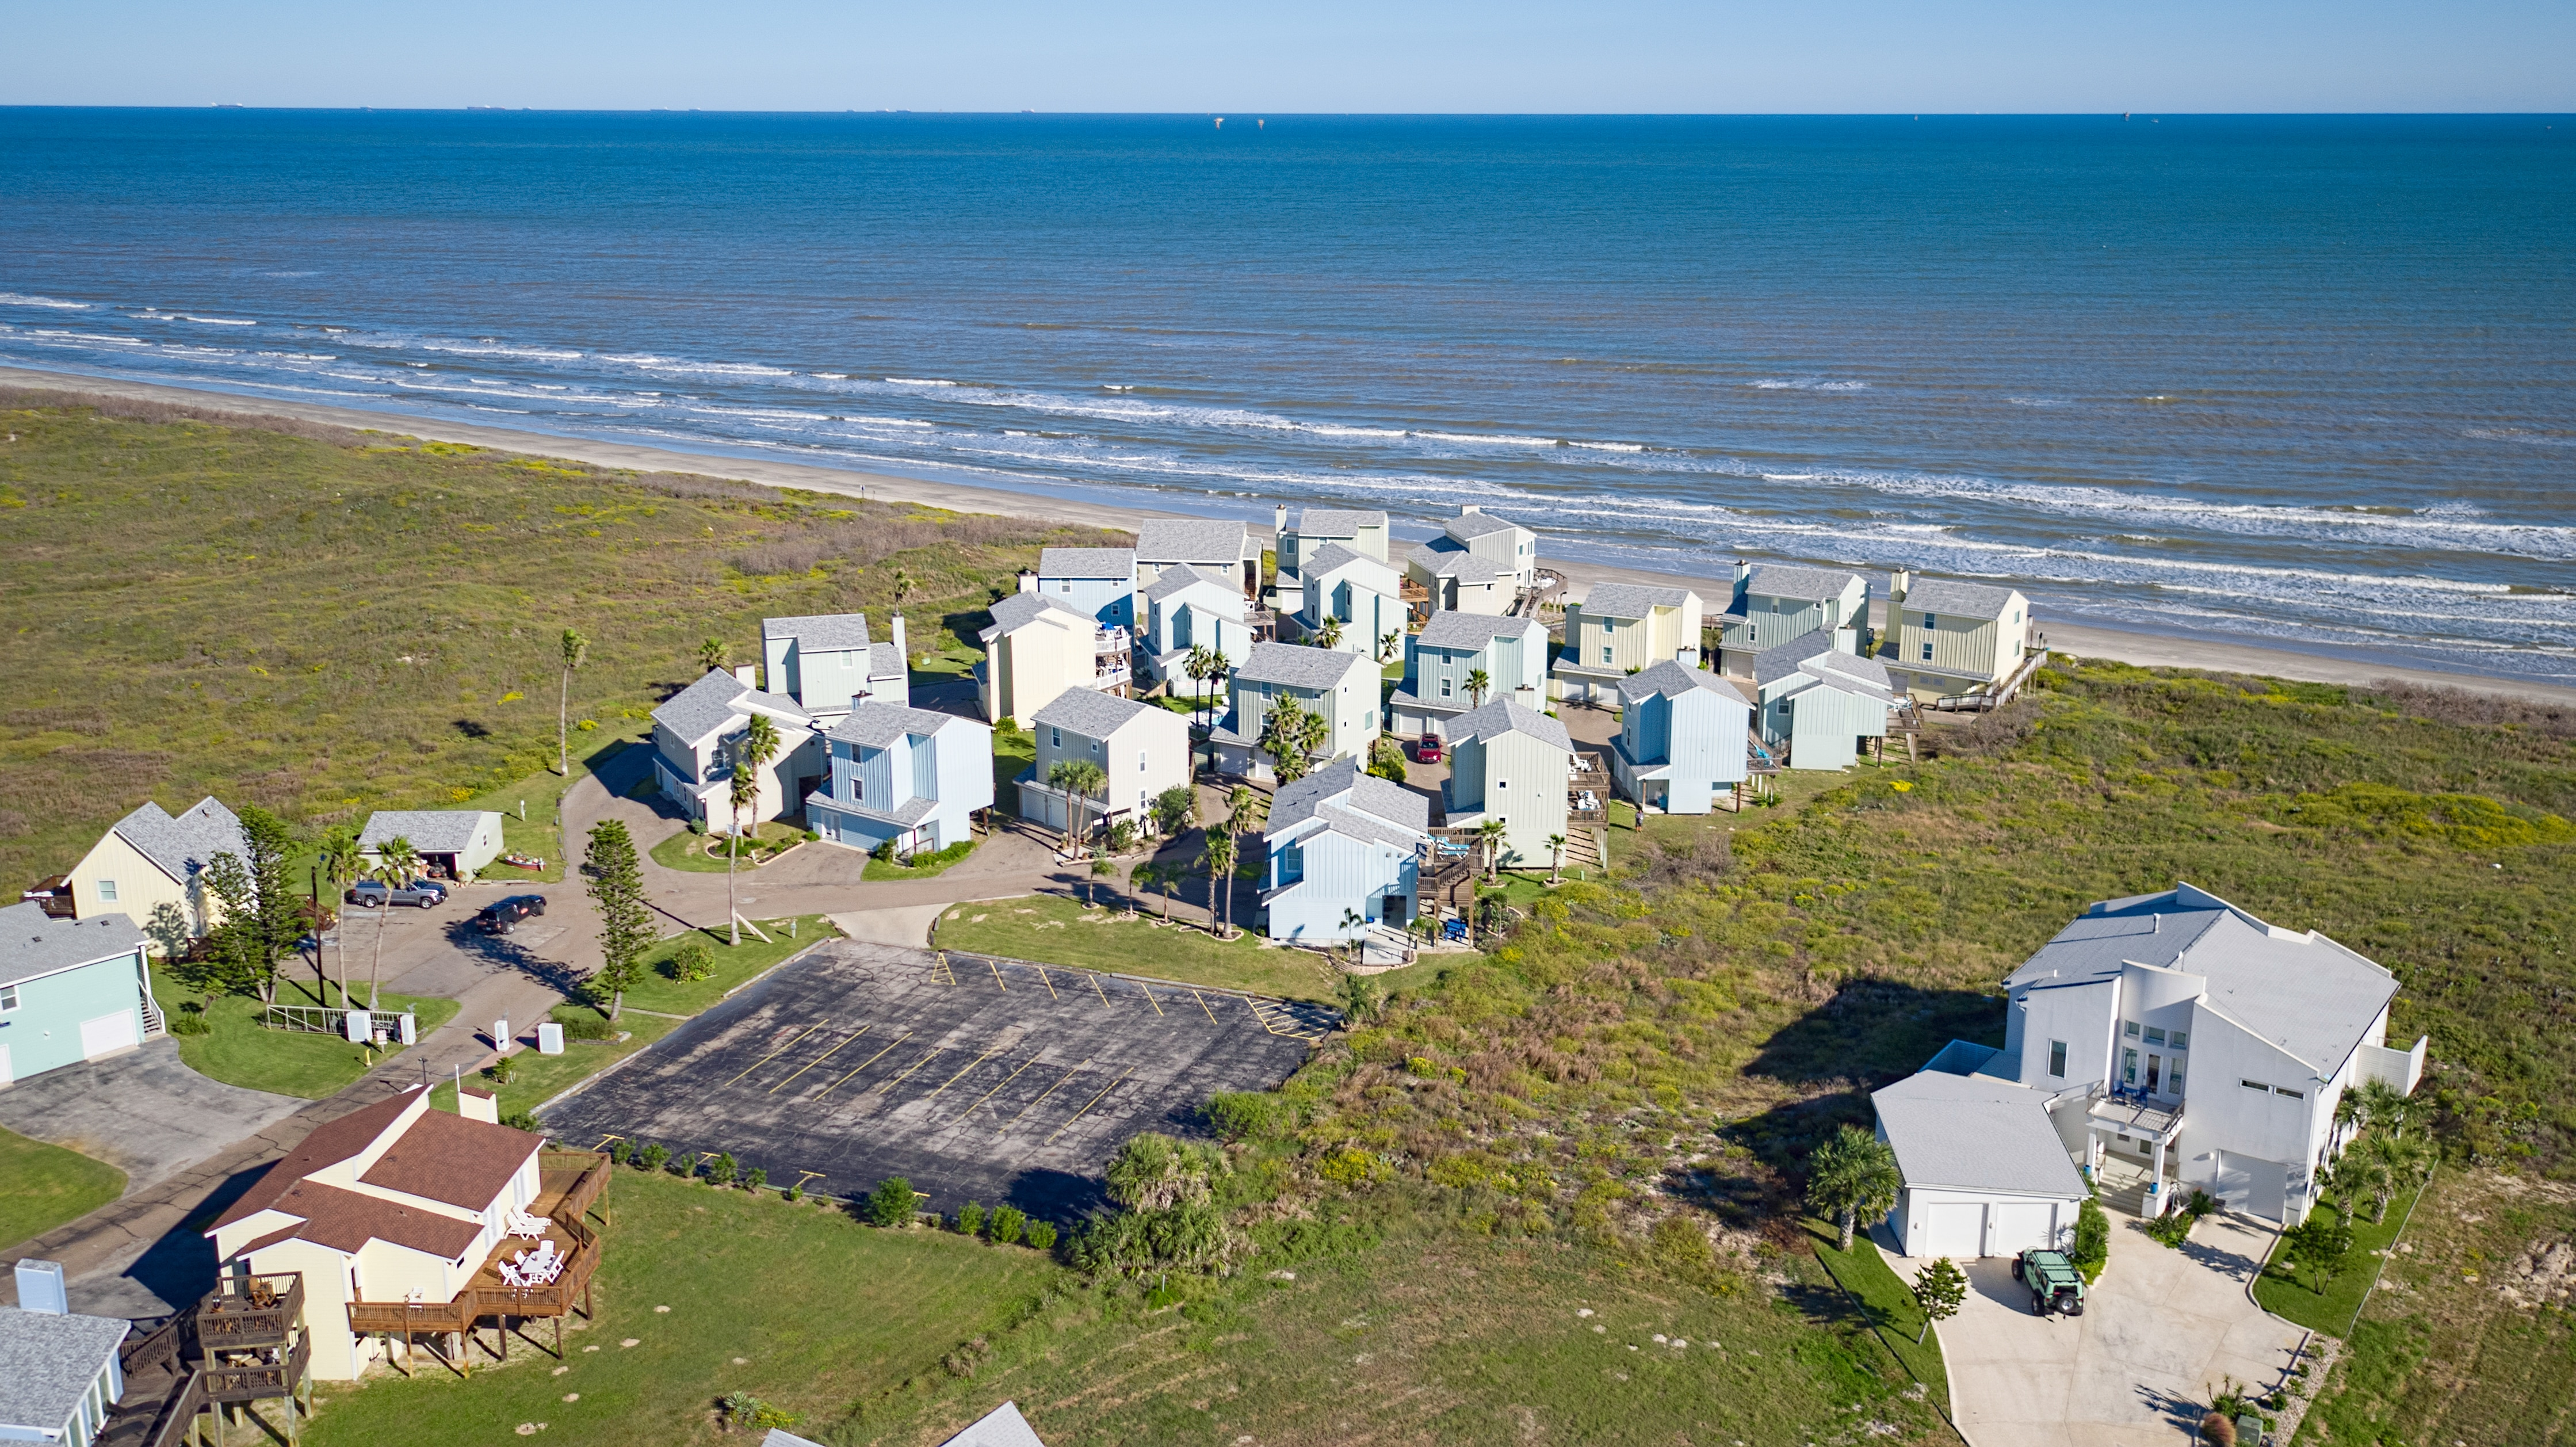 Welcome to Port Aransas! Your rental is located in the exclusive Lost Colony beachfront community.